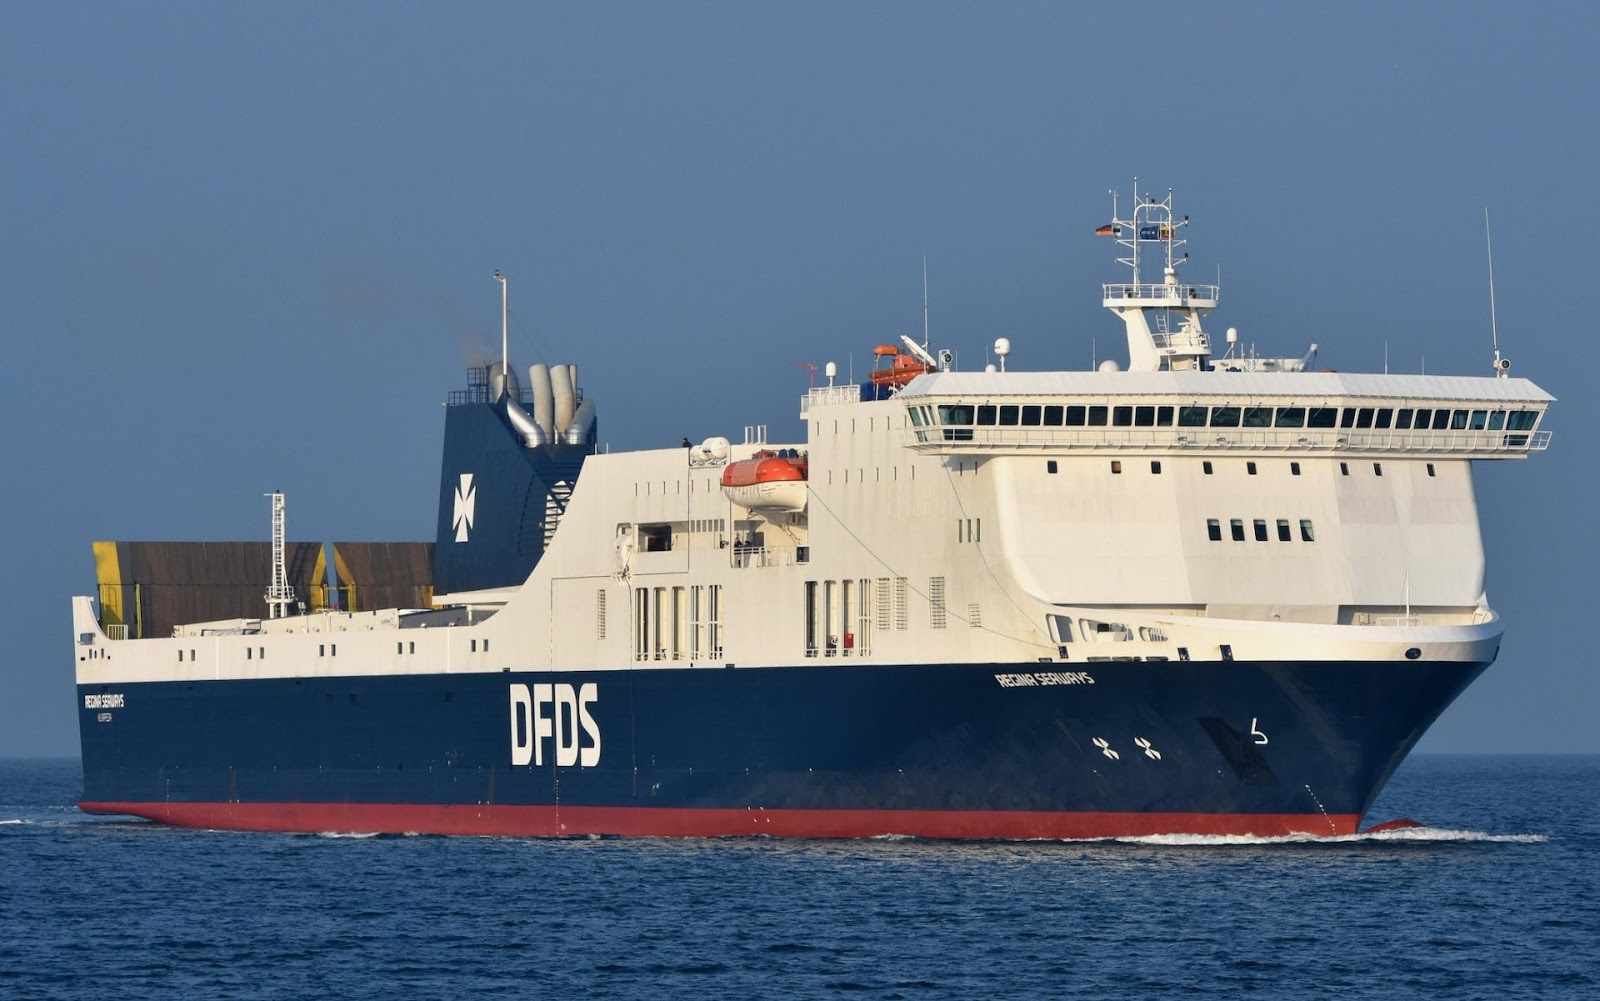 A DFDS Ferry was left stranded in the Baltic Sea early this week. Credit:    MARTIN WITTE/ALAMY